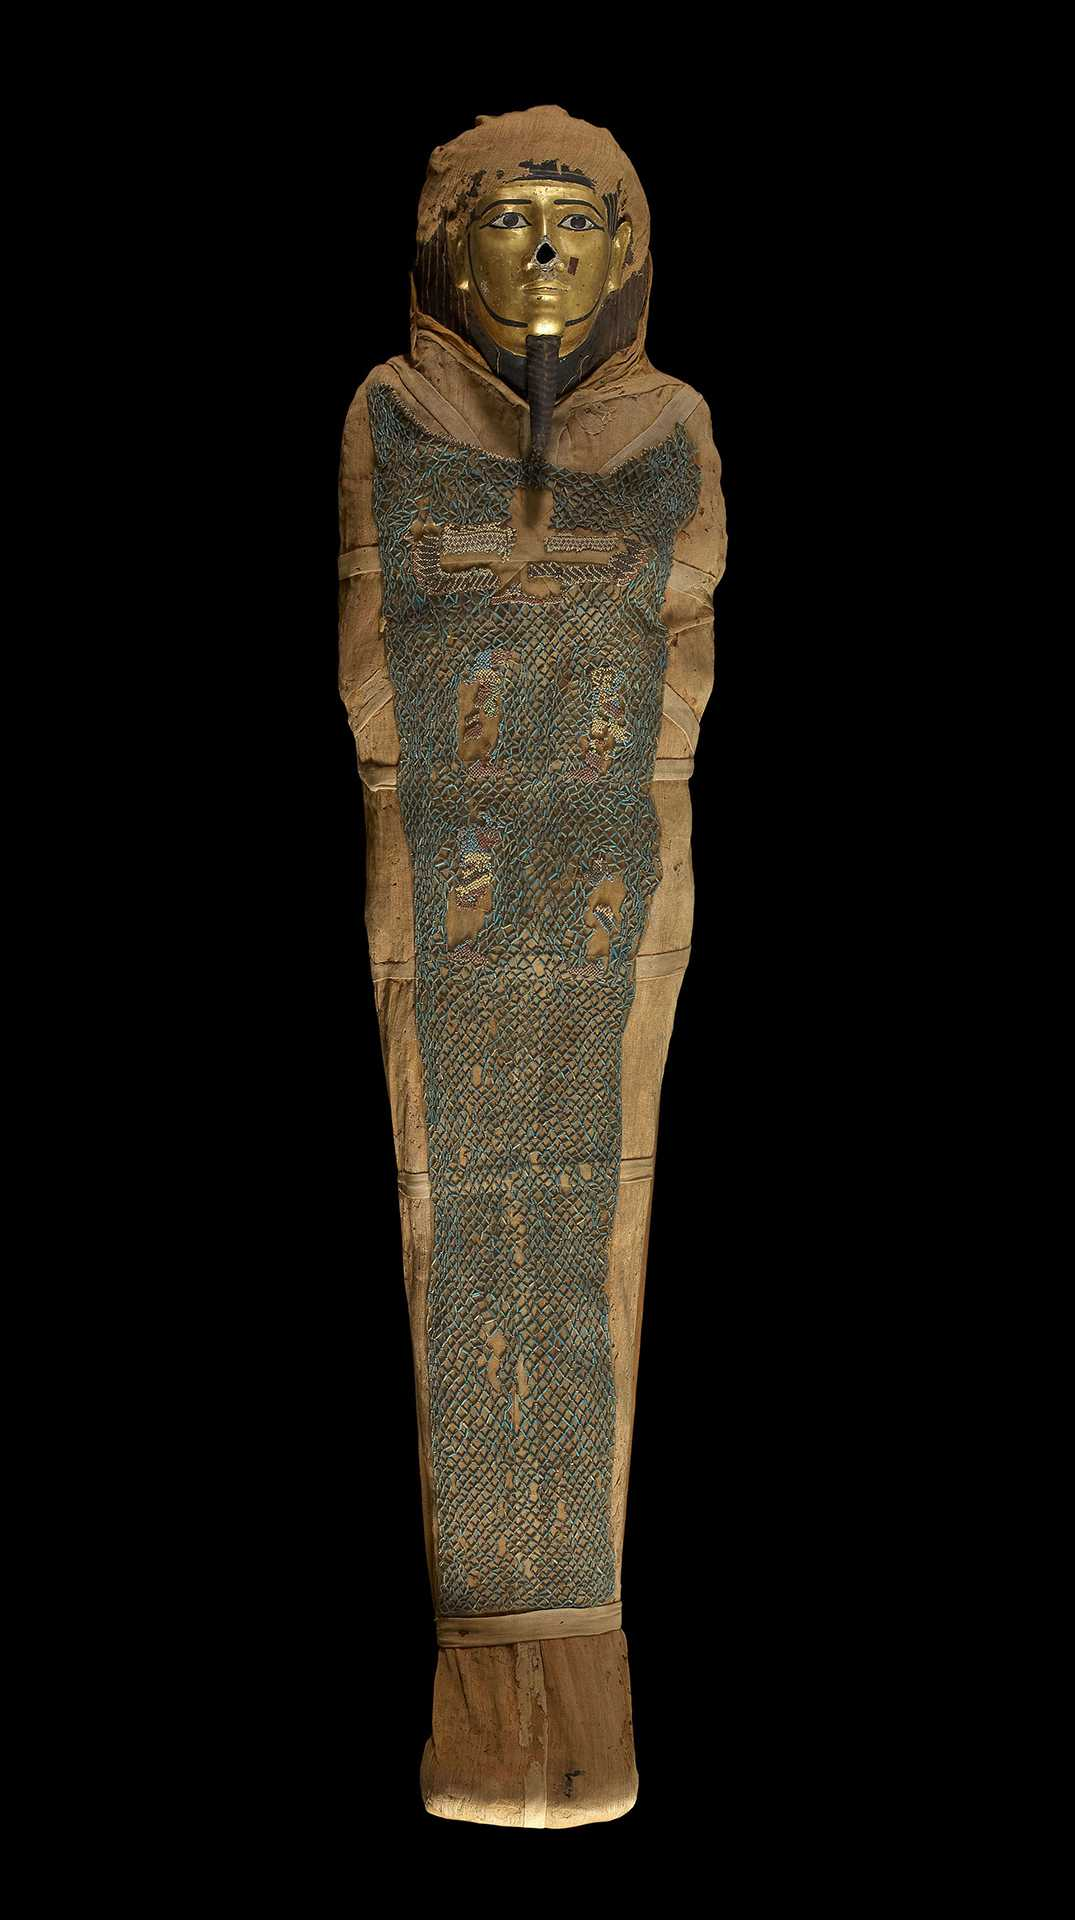 Mummy of Irthorru. Late Period, 26th Dynasty, about 600 BCE, EA 20745. © The Trustees of the British Museum